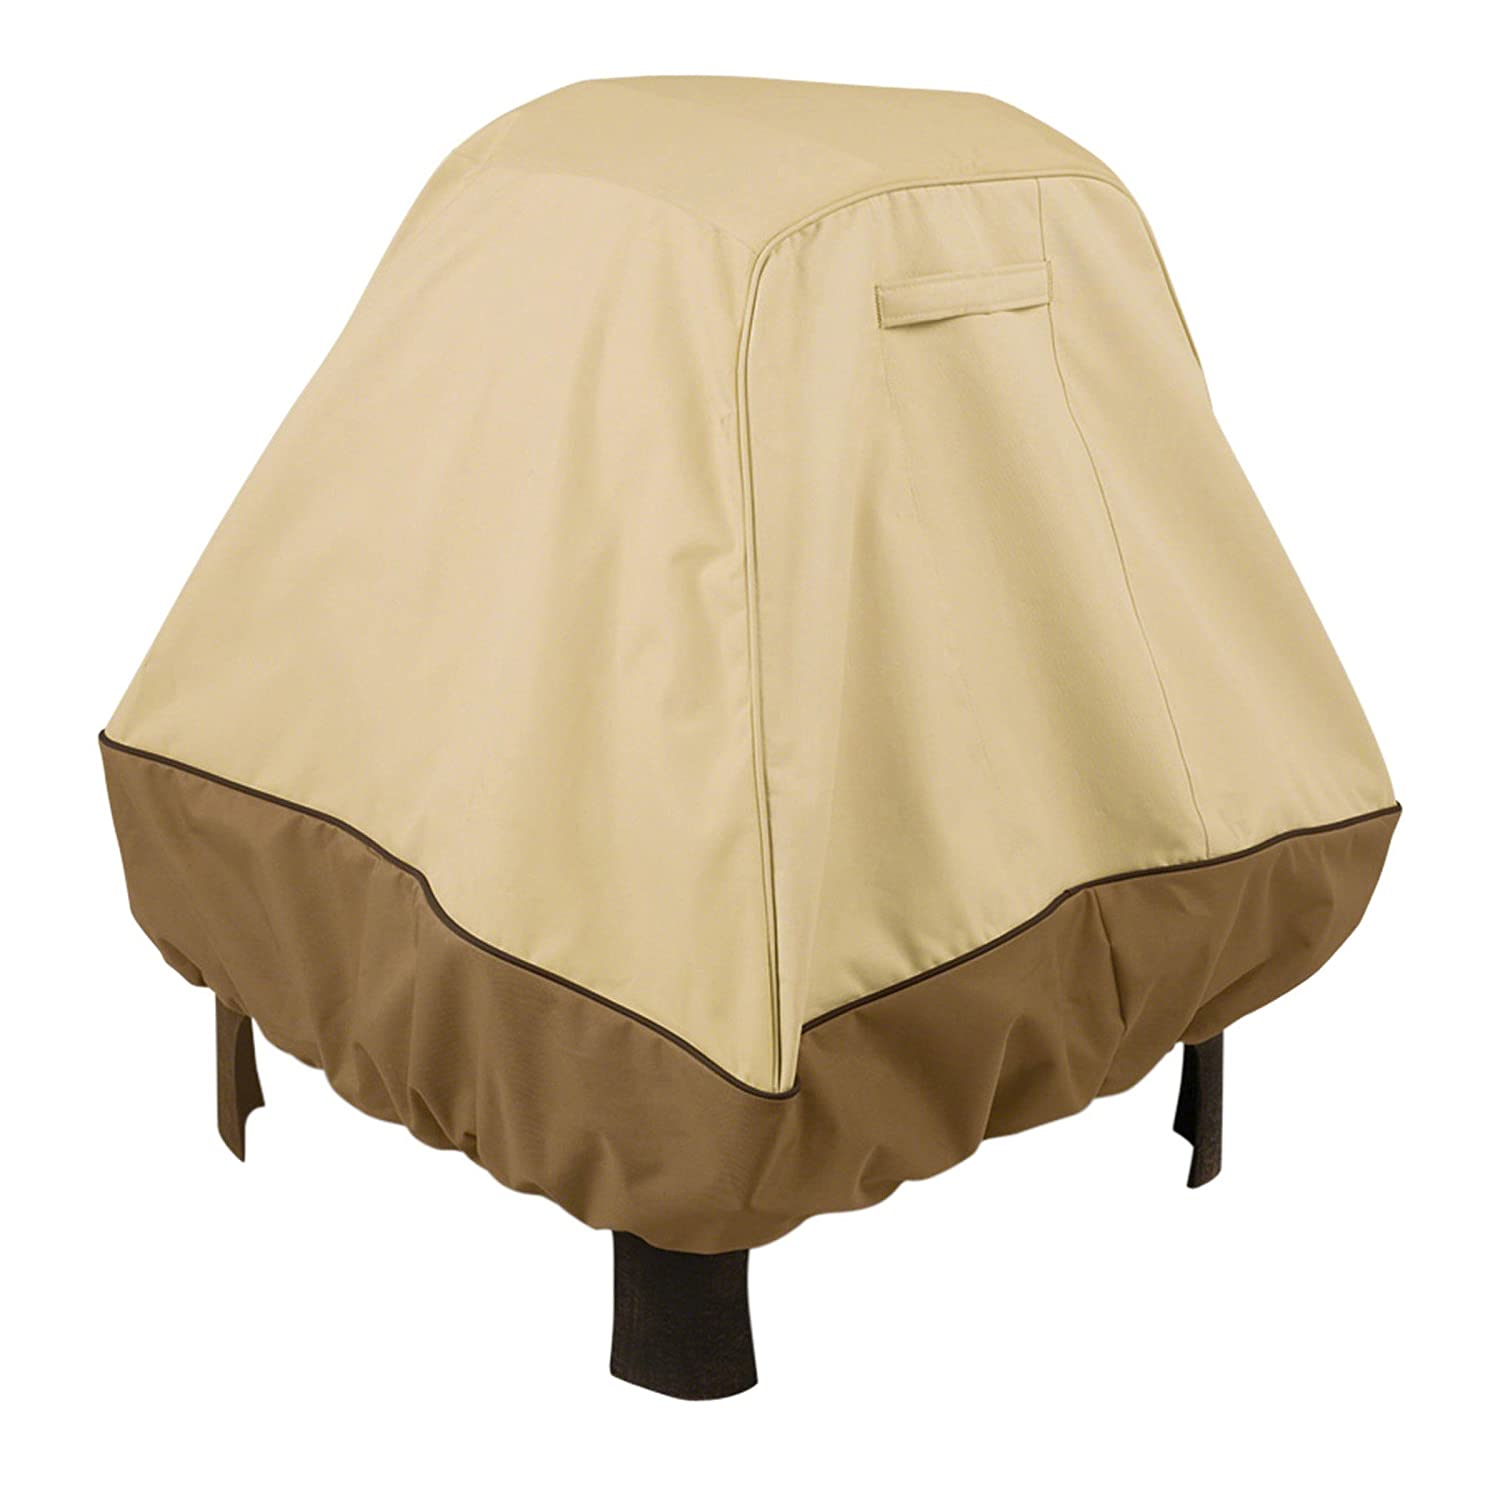 Classic Accessories Veranda Fire Pit Cover, X-Large, Standing 72952